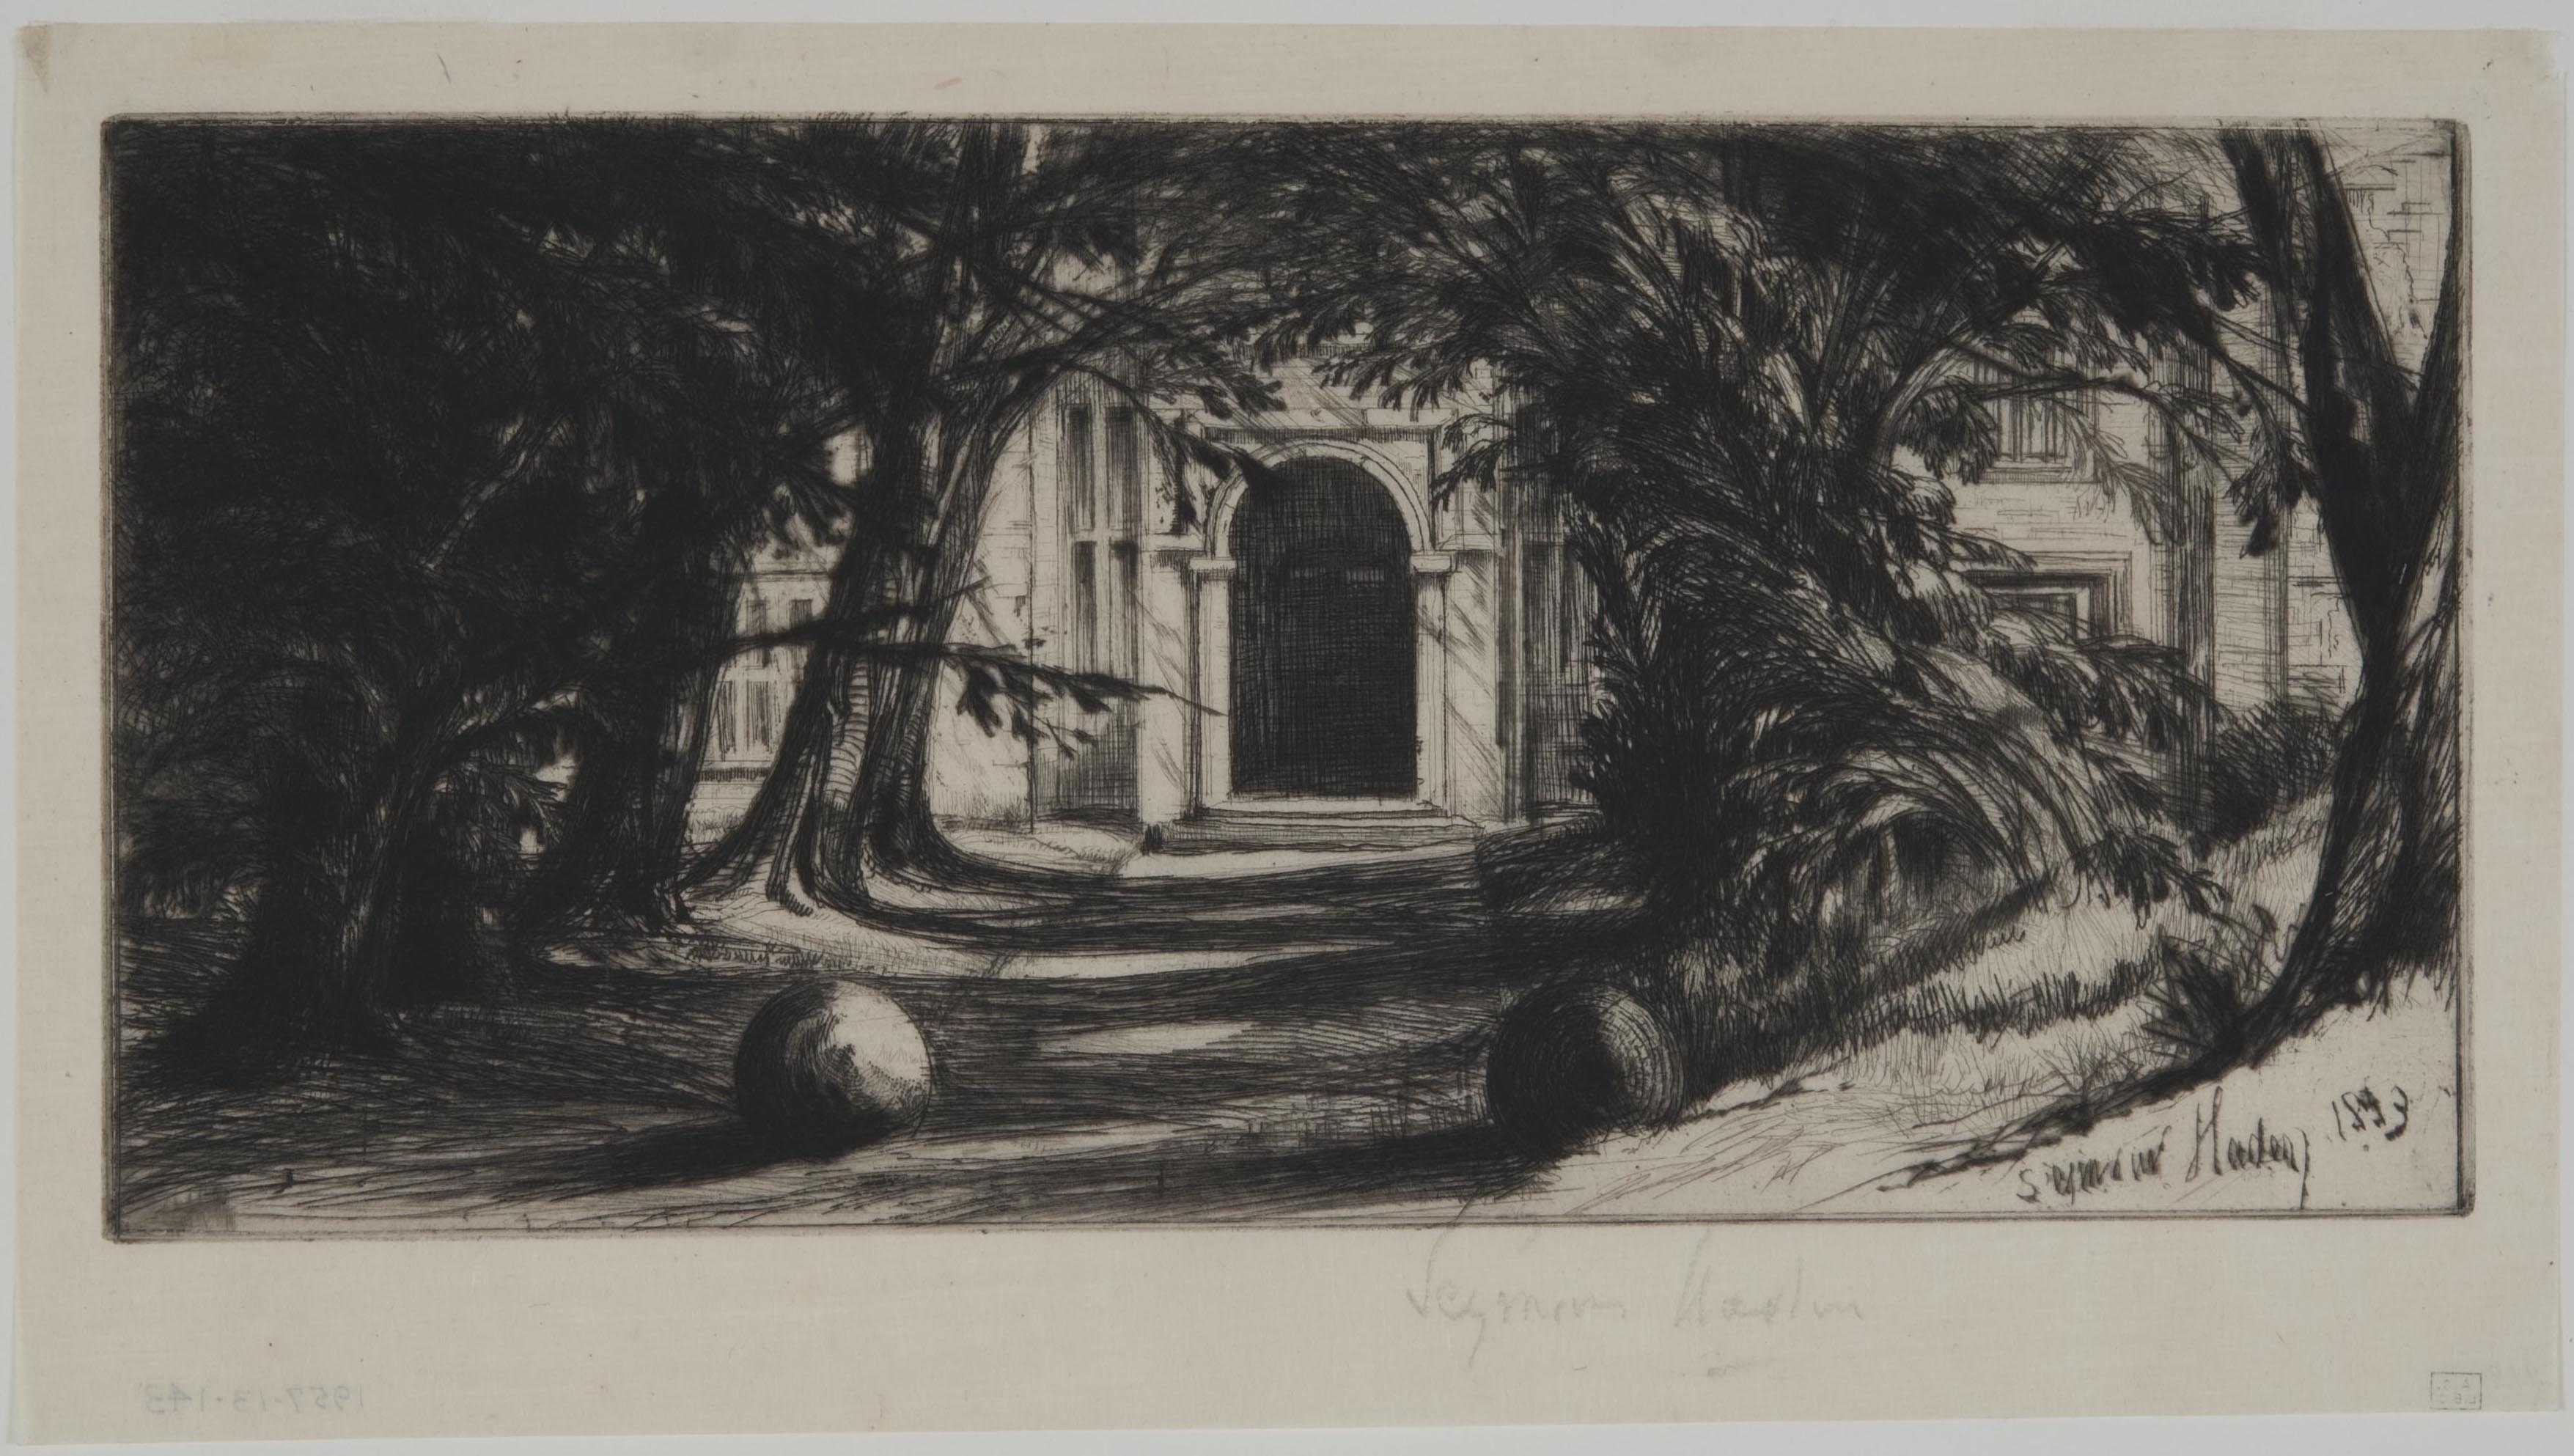 Francis Seymour Haden, Mytton Hall, 1859